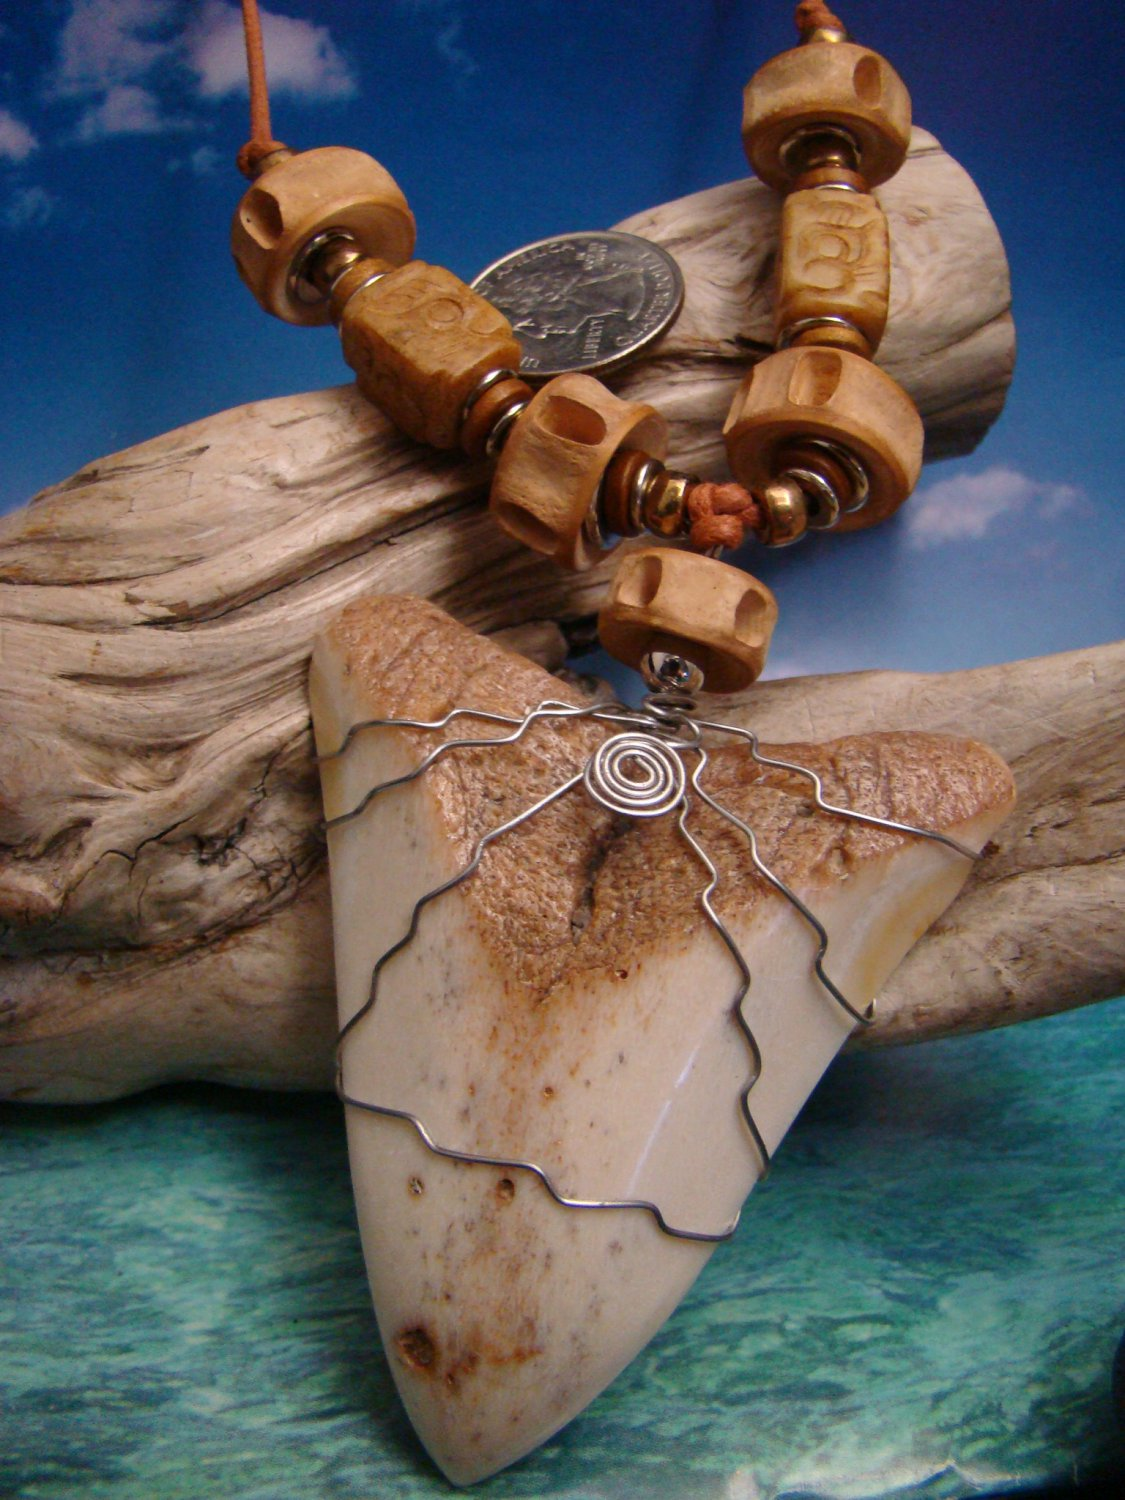 "South Pacific 78mm Fossil Megalodon Shark Tooth "" Necklace - Shark Vertebra & Carved Jade Bead"